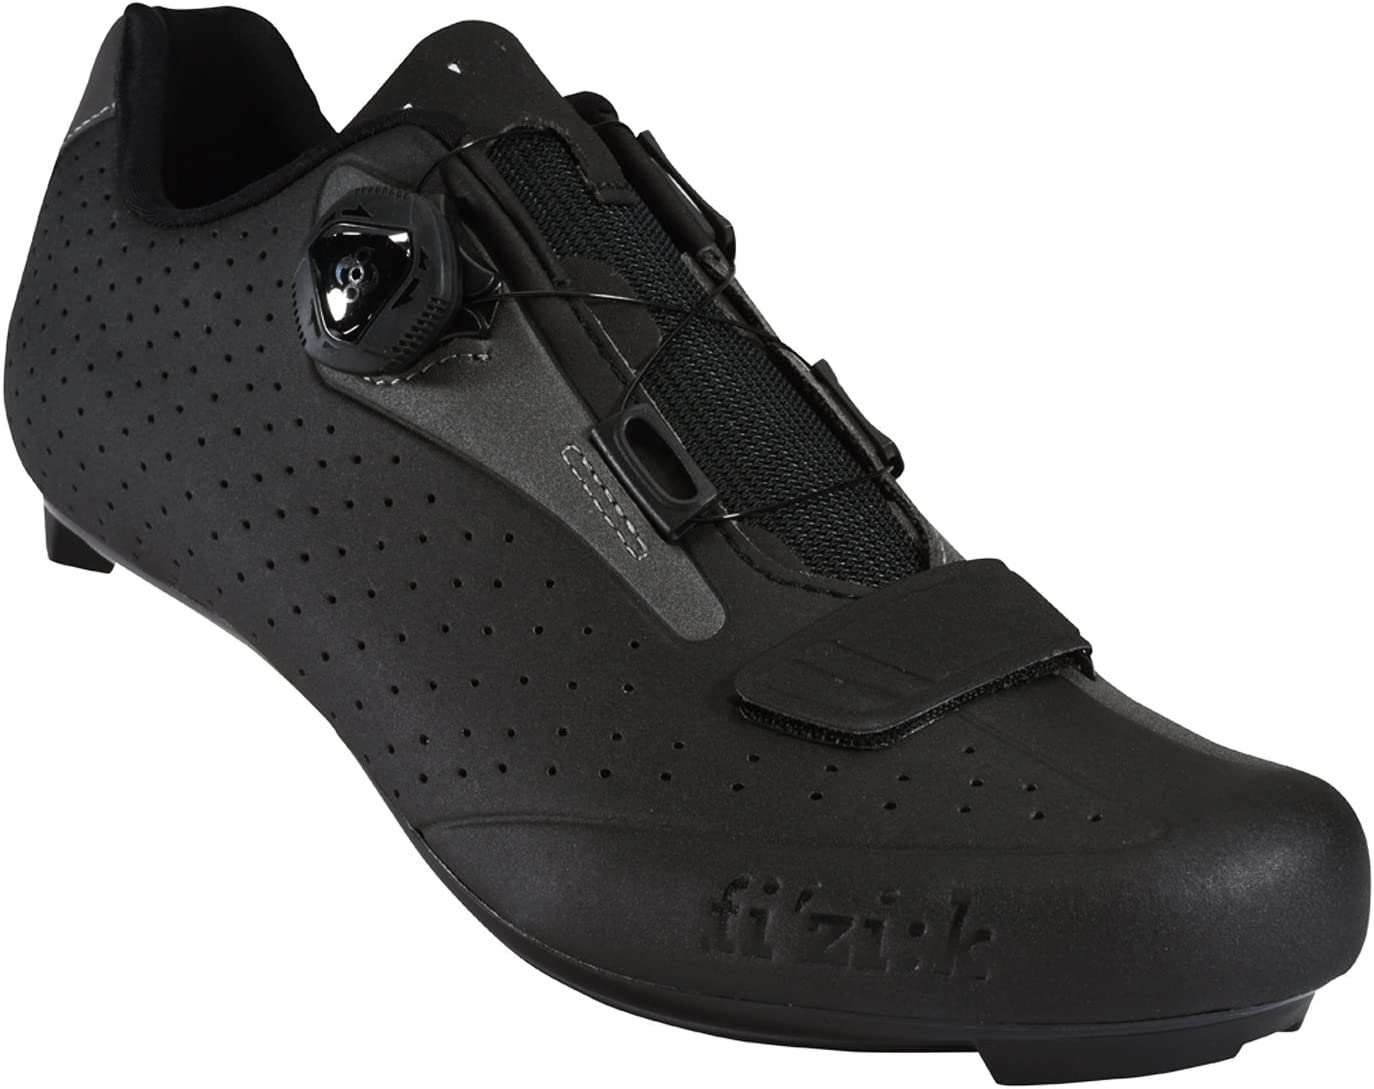 Fizik R5B Uomo Road Shoes – Performance Exclusive